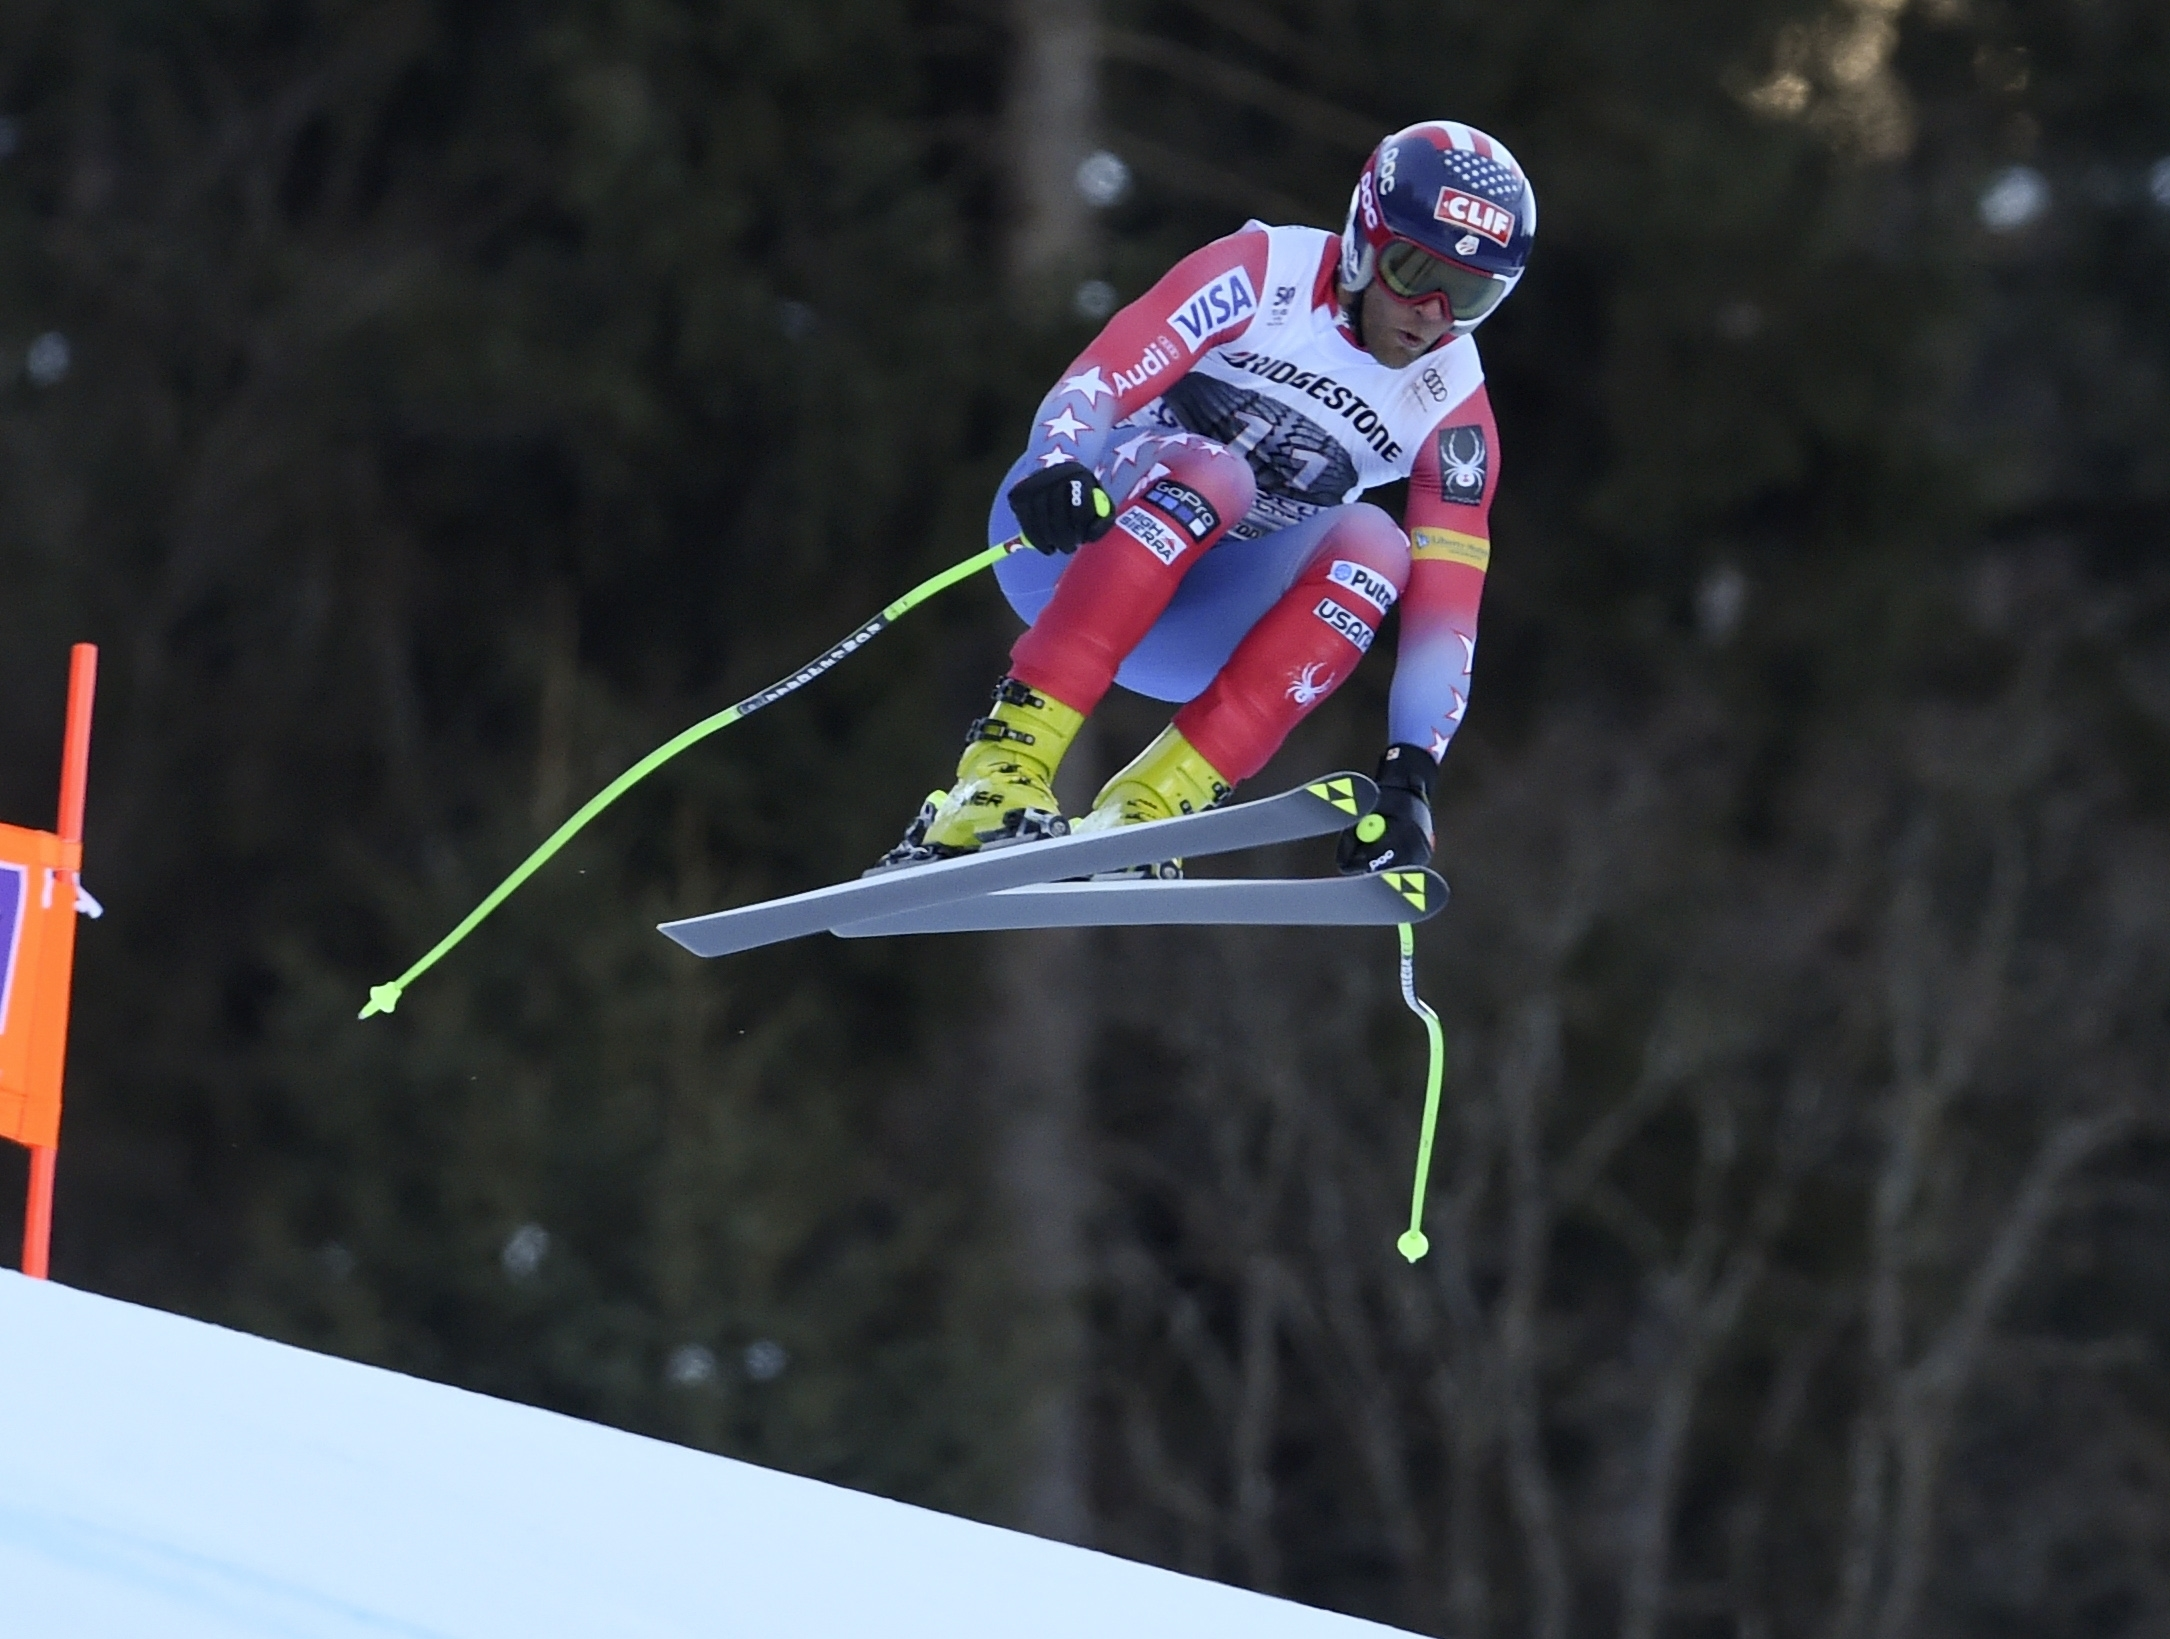 United States' Steven Nyman competes during an alpine ski, men's World Cup downhill race, in Garmisch Partenkirchen, Friday, Jan. 27, 2017. (AP Photo/Marco Tacca)